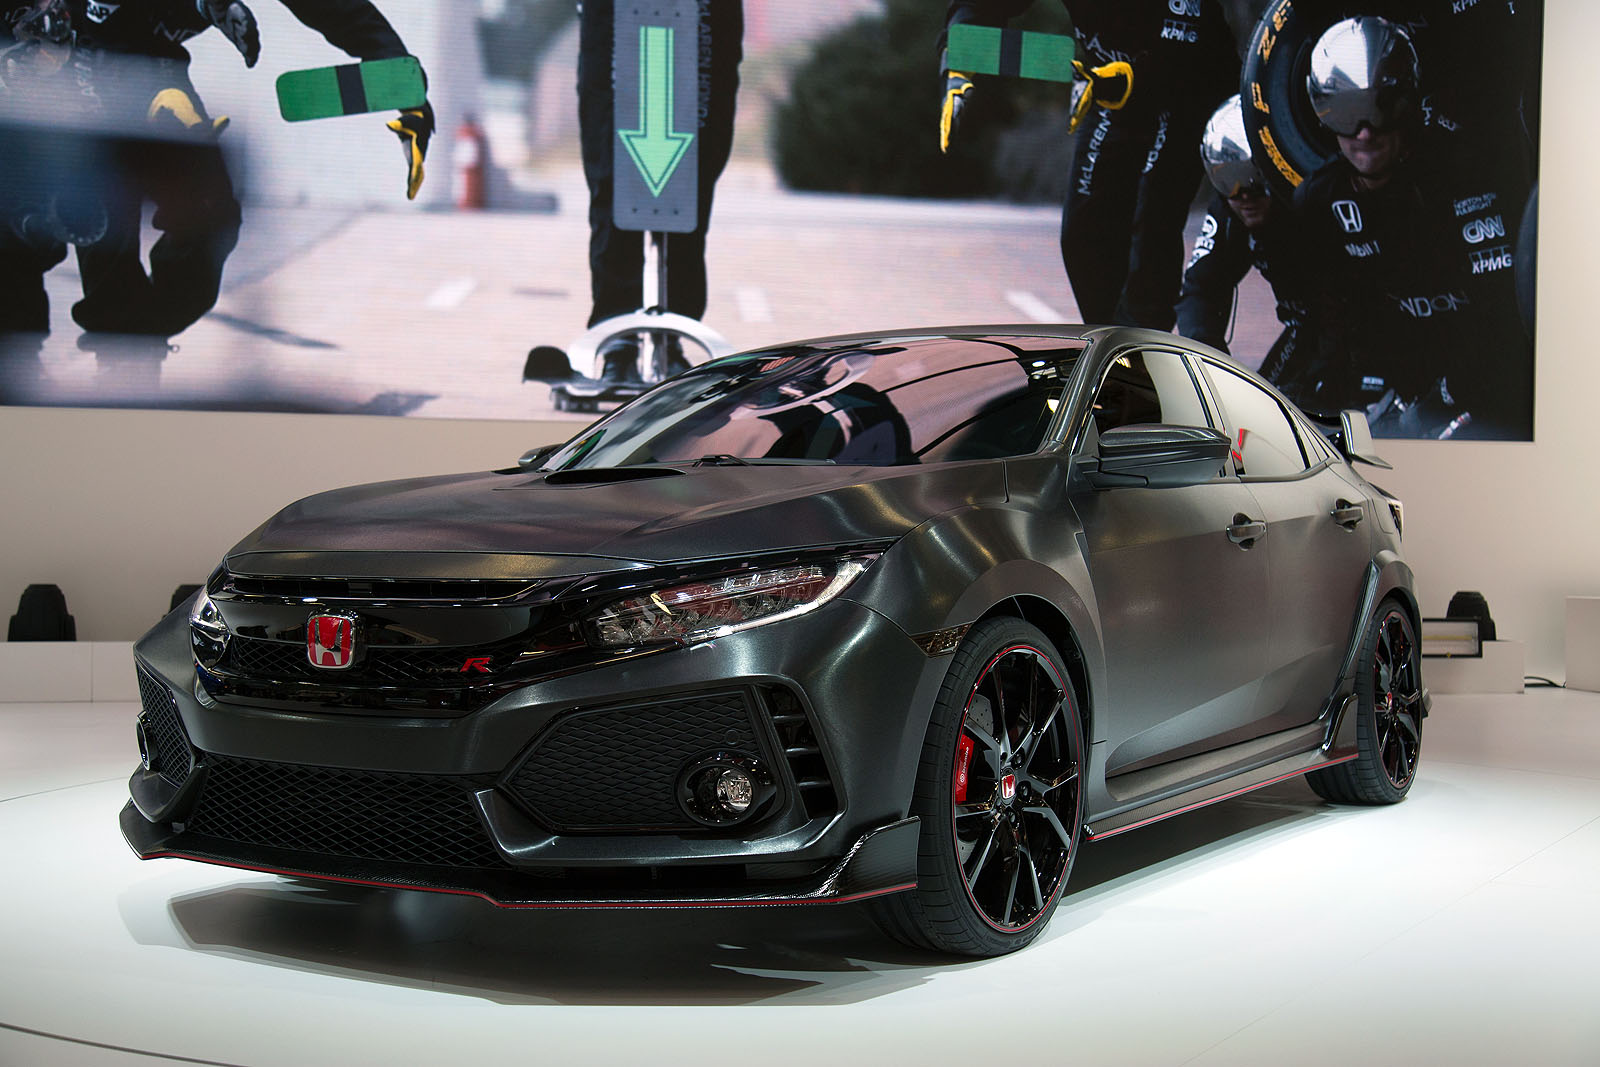 2018 honda civic type r prototype offers first look at us bound model news. Black Bedroom Furniture Sets. Home Design Ideas